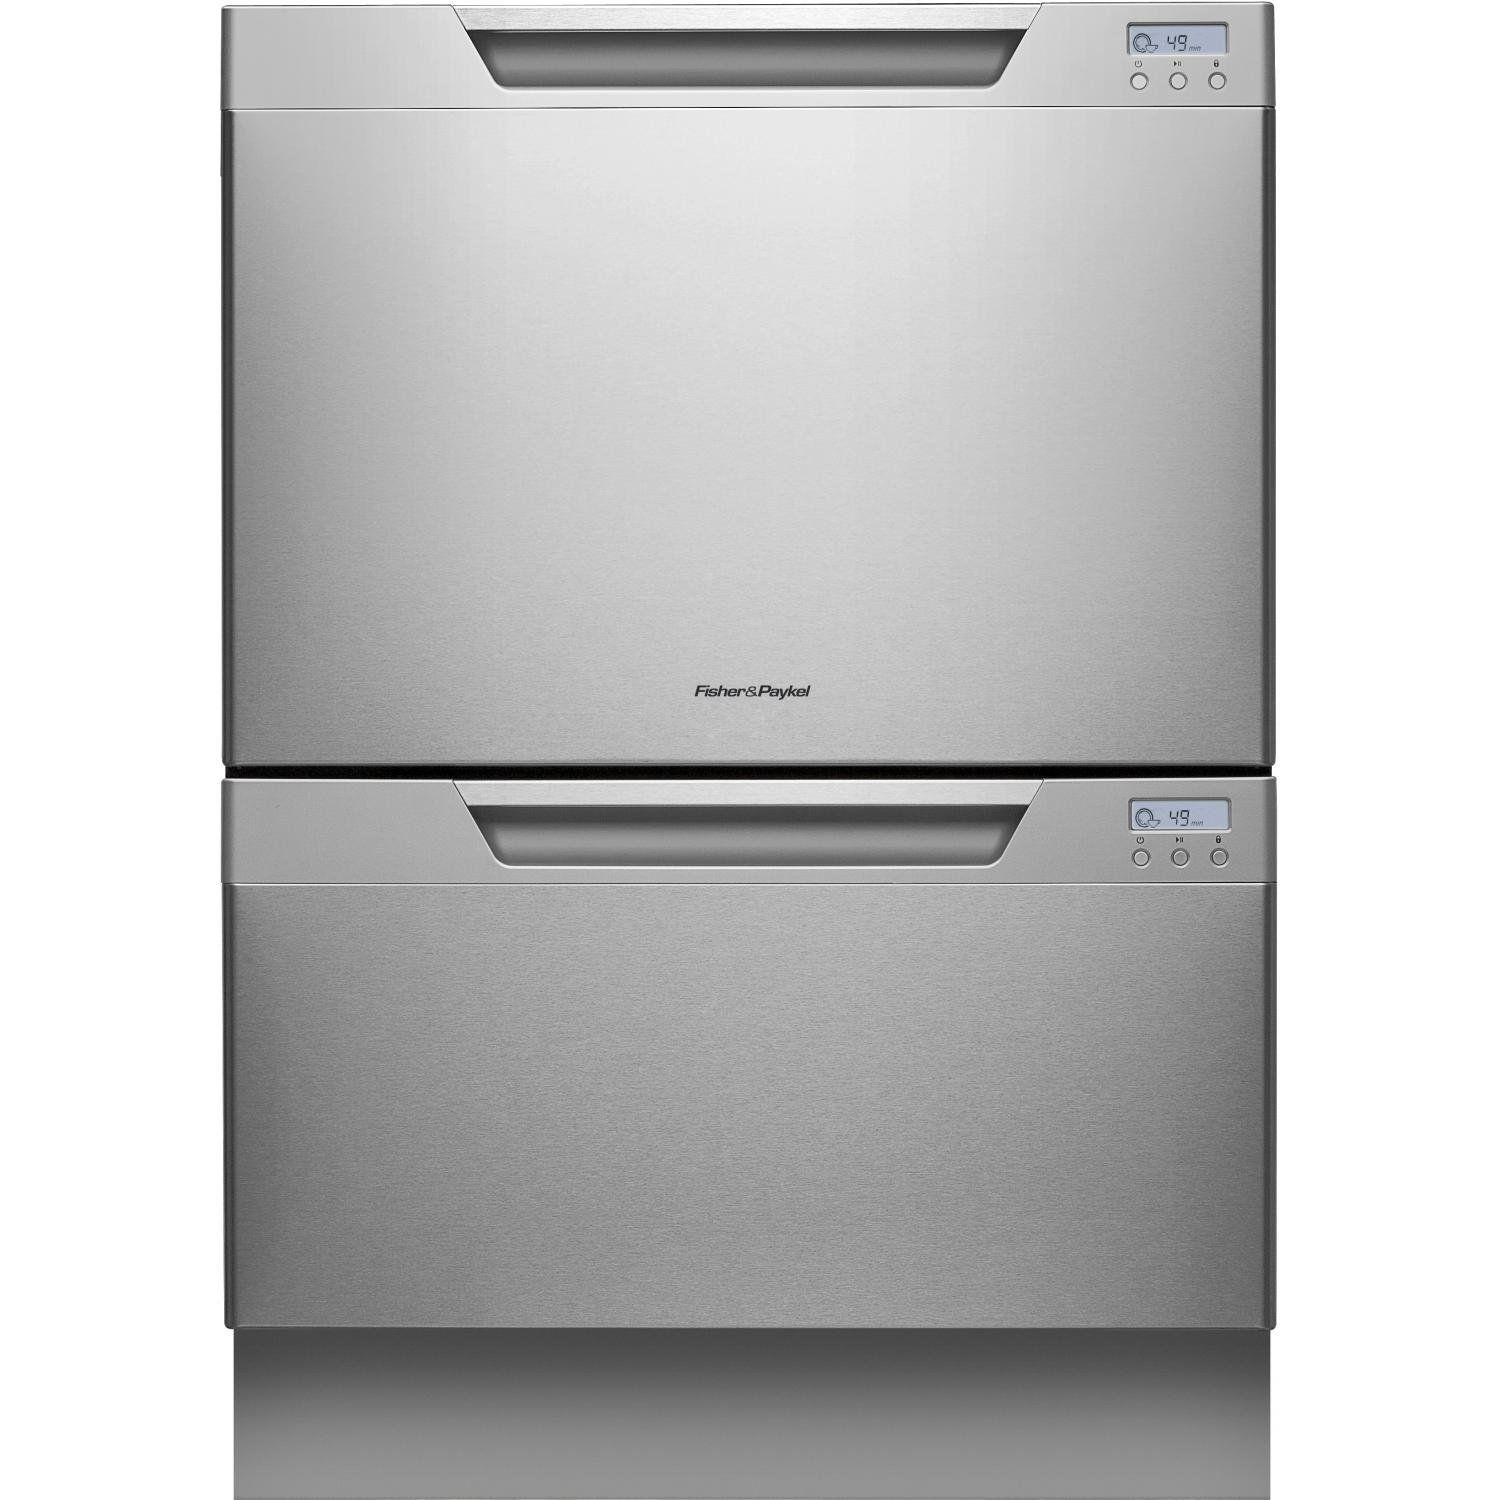 prd fisher drawers double dishwasher with integrated stainless paykel steel drawer